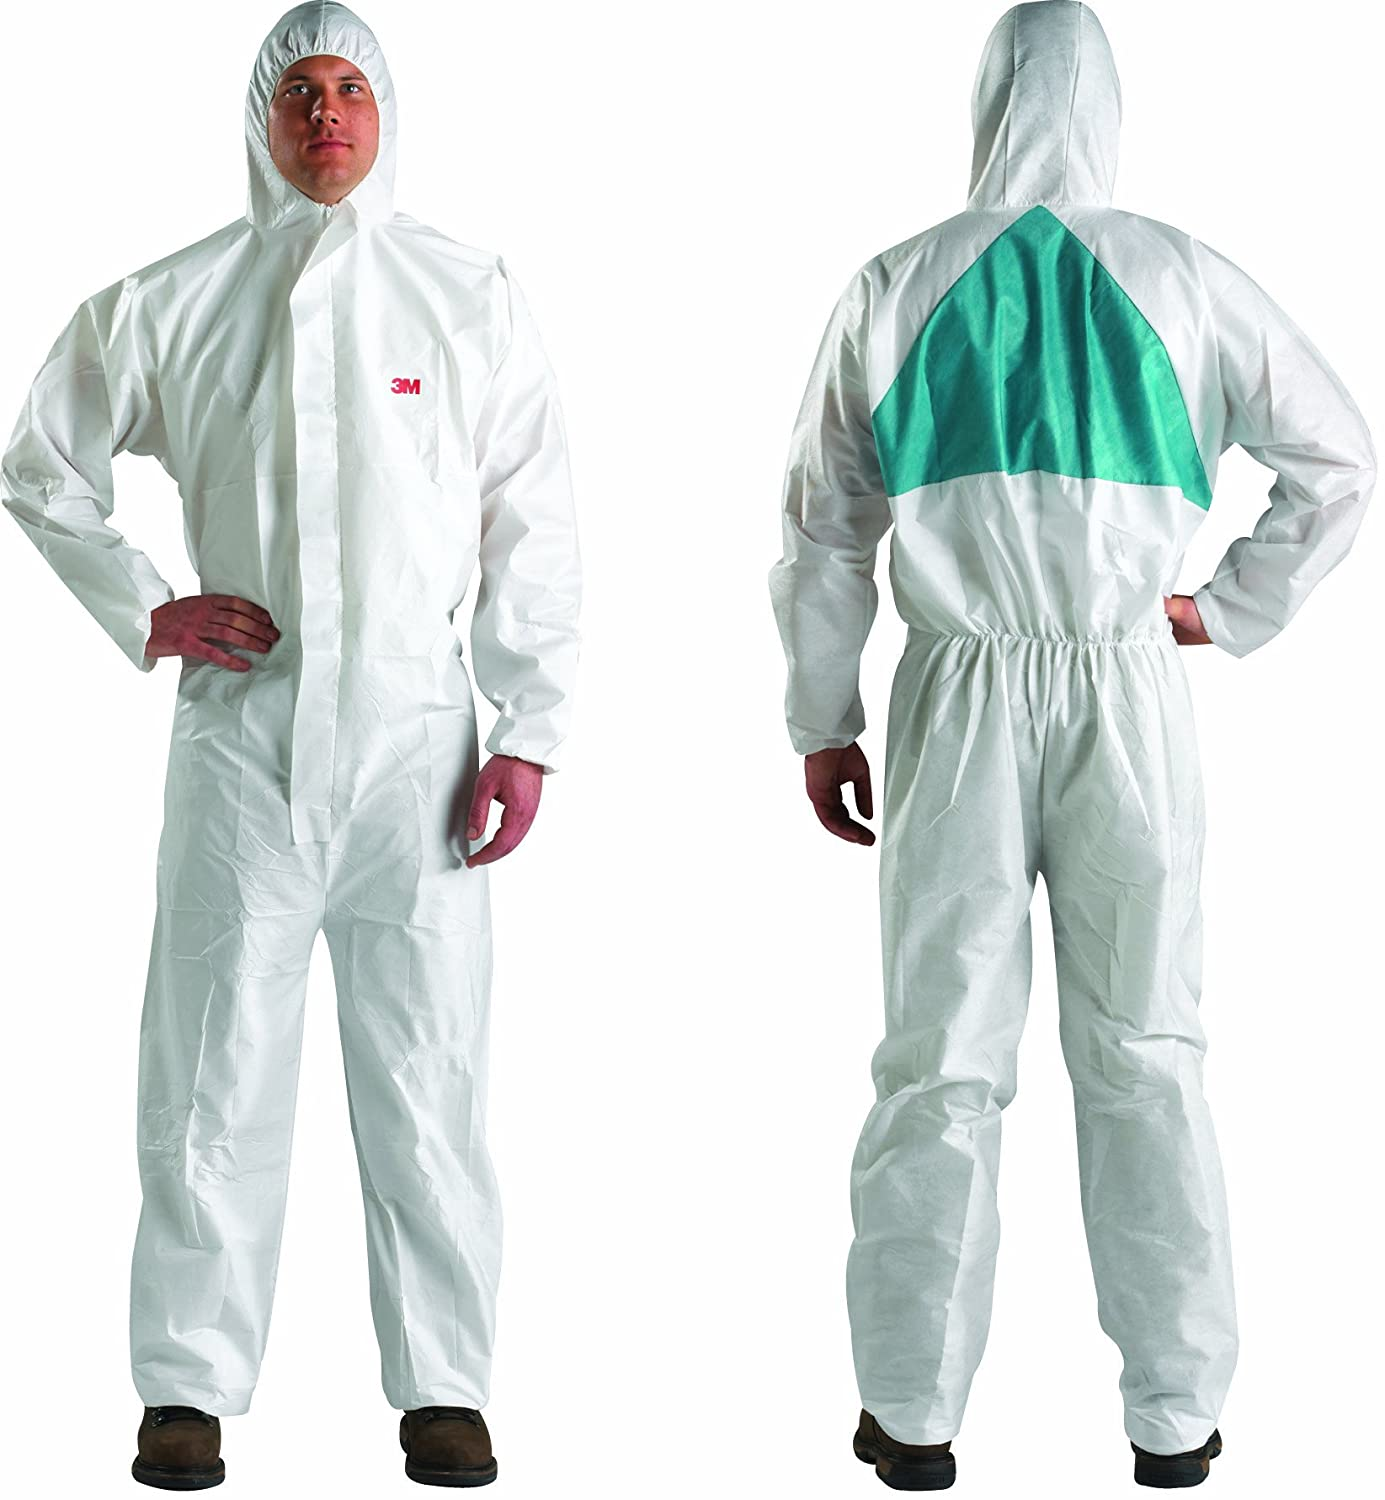 3M Disposable Protective Coverall Safety Work Wear 4520-L 25/Case: Industrial & Scientific